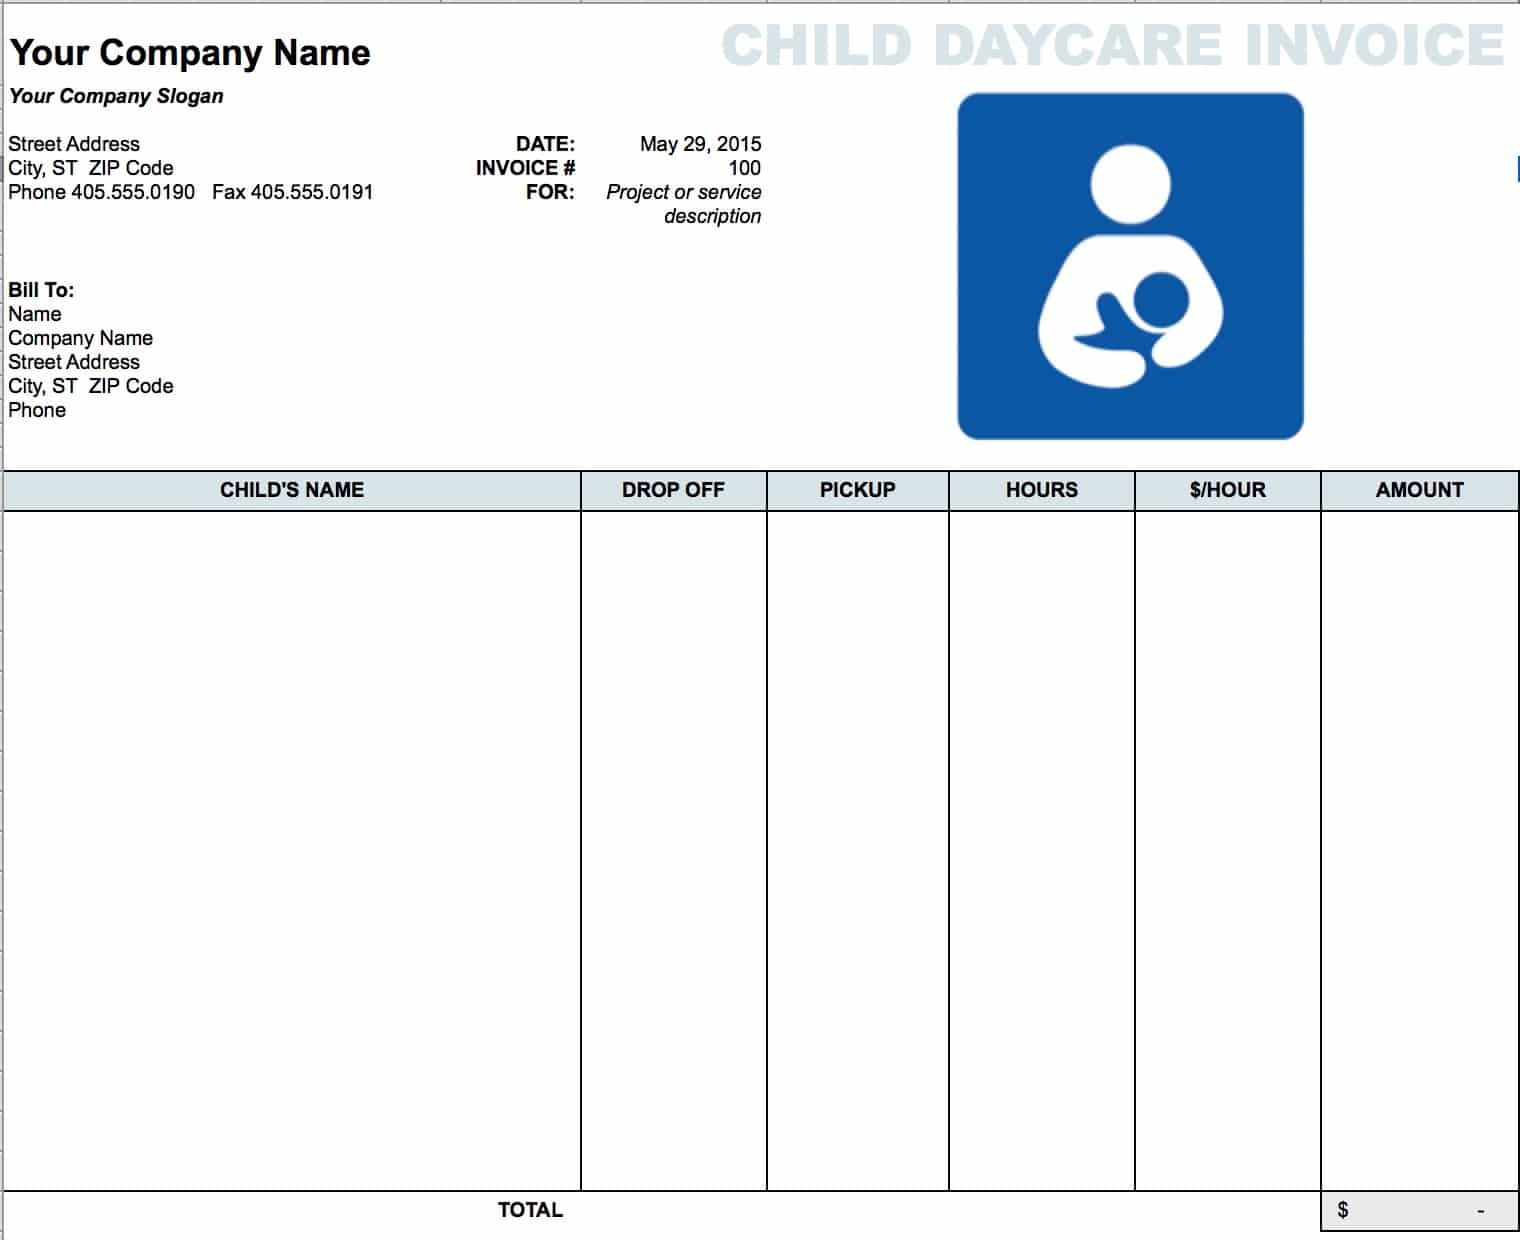 Free Daycare Child Invoice Template Excel PDF Word Doc - Free online receipts invoices for service business